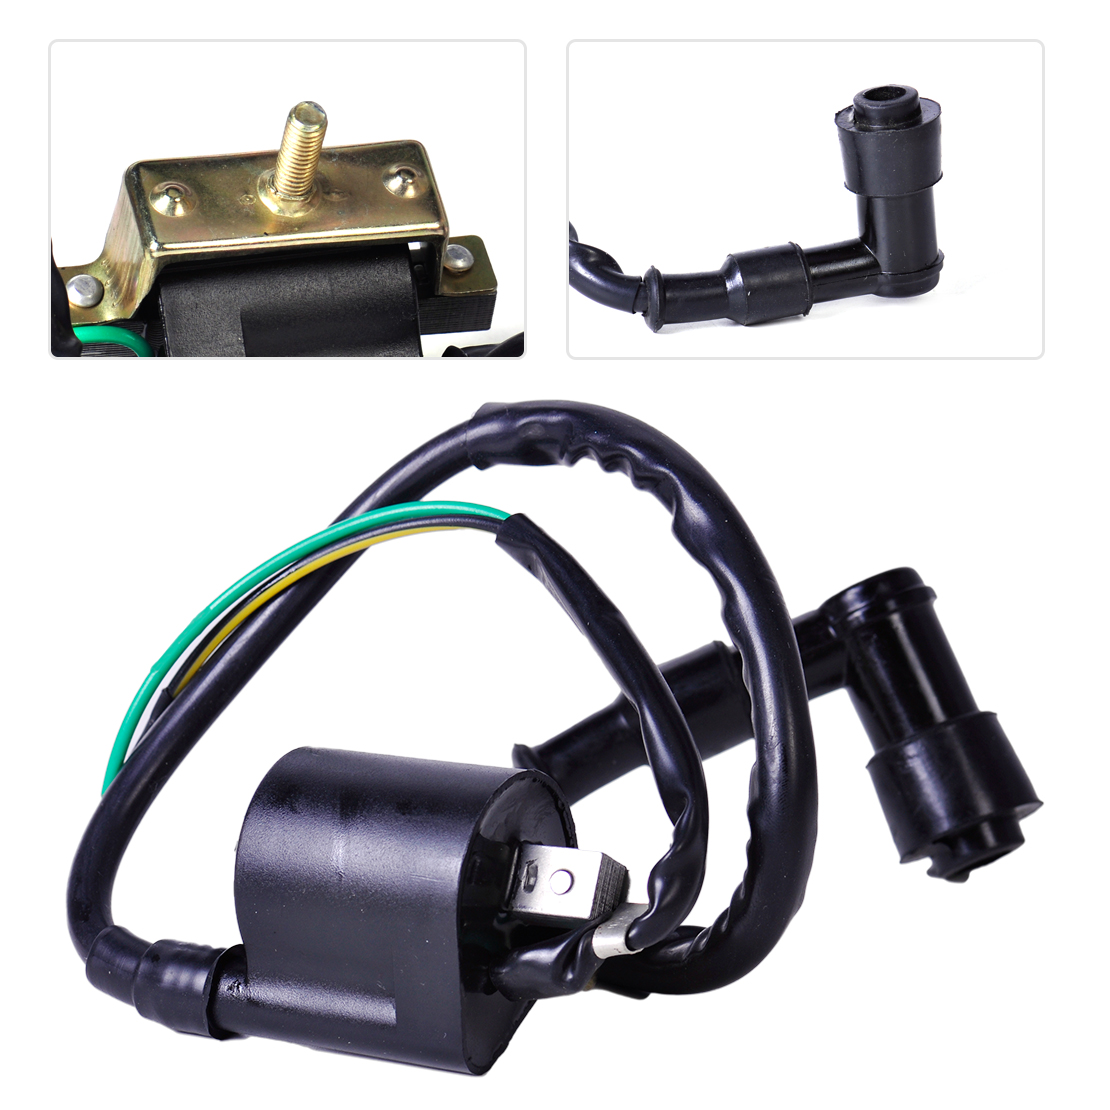 Replacement Ignition Coil 2 Pin for China 4-Stroke Engines 50//125cc